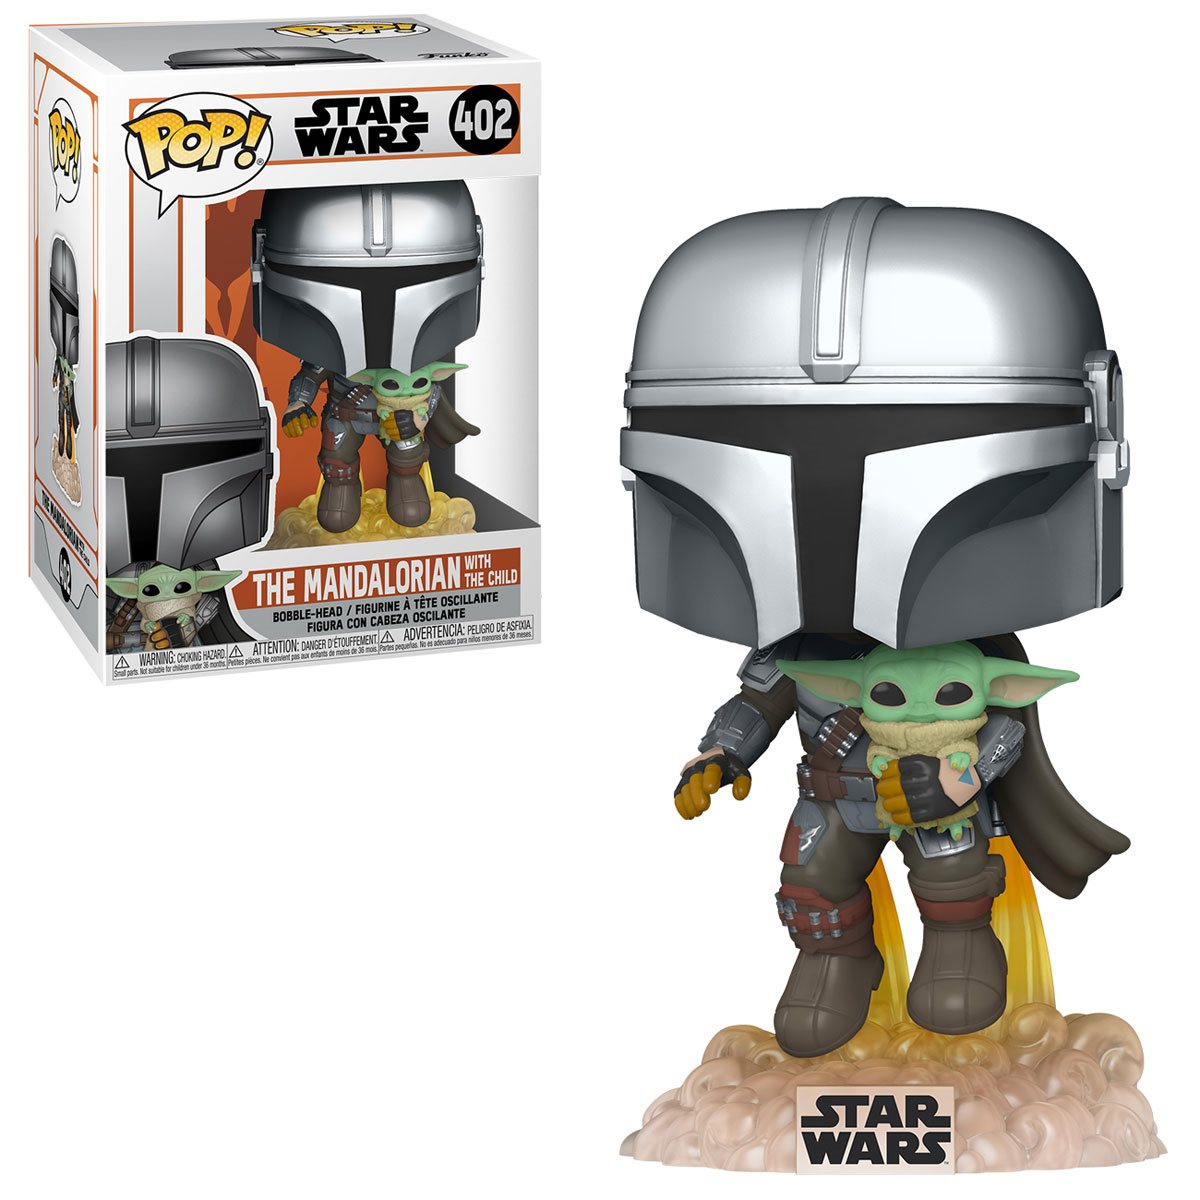 PRÉ VENDA: Funko Pop! The Mandalorian Flying: The Mandalorian ( Star Wars )  #402 - Funko